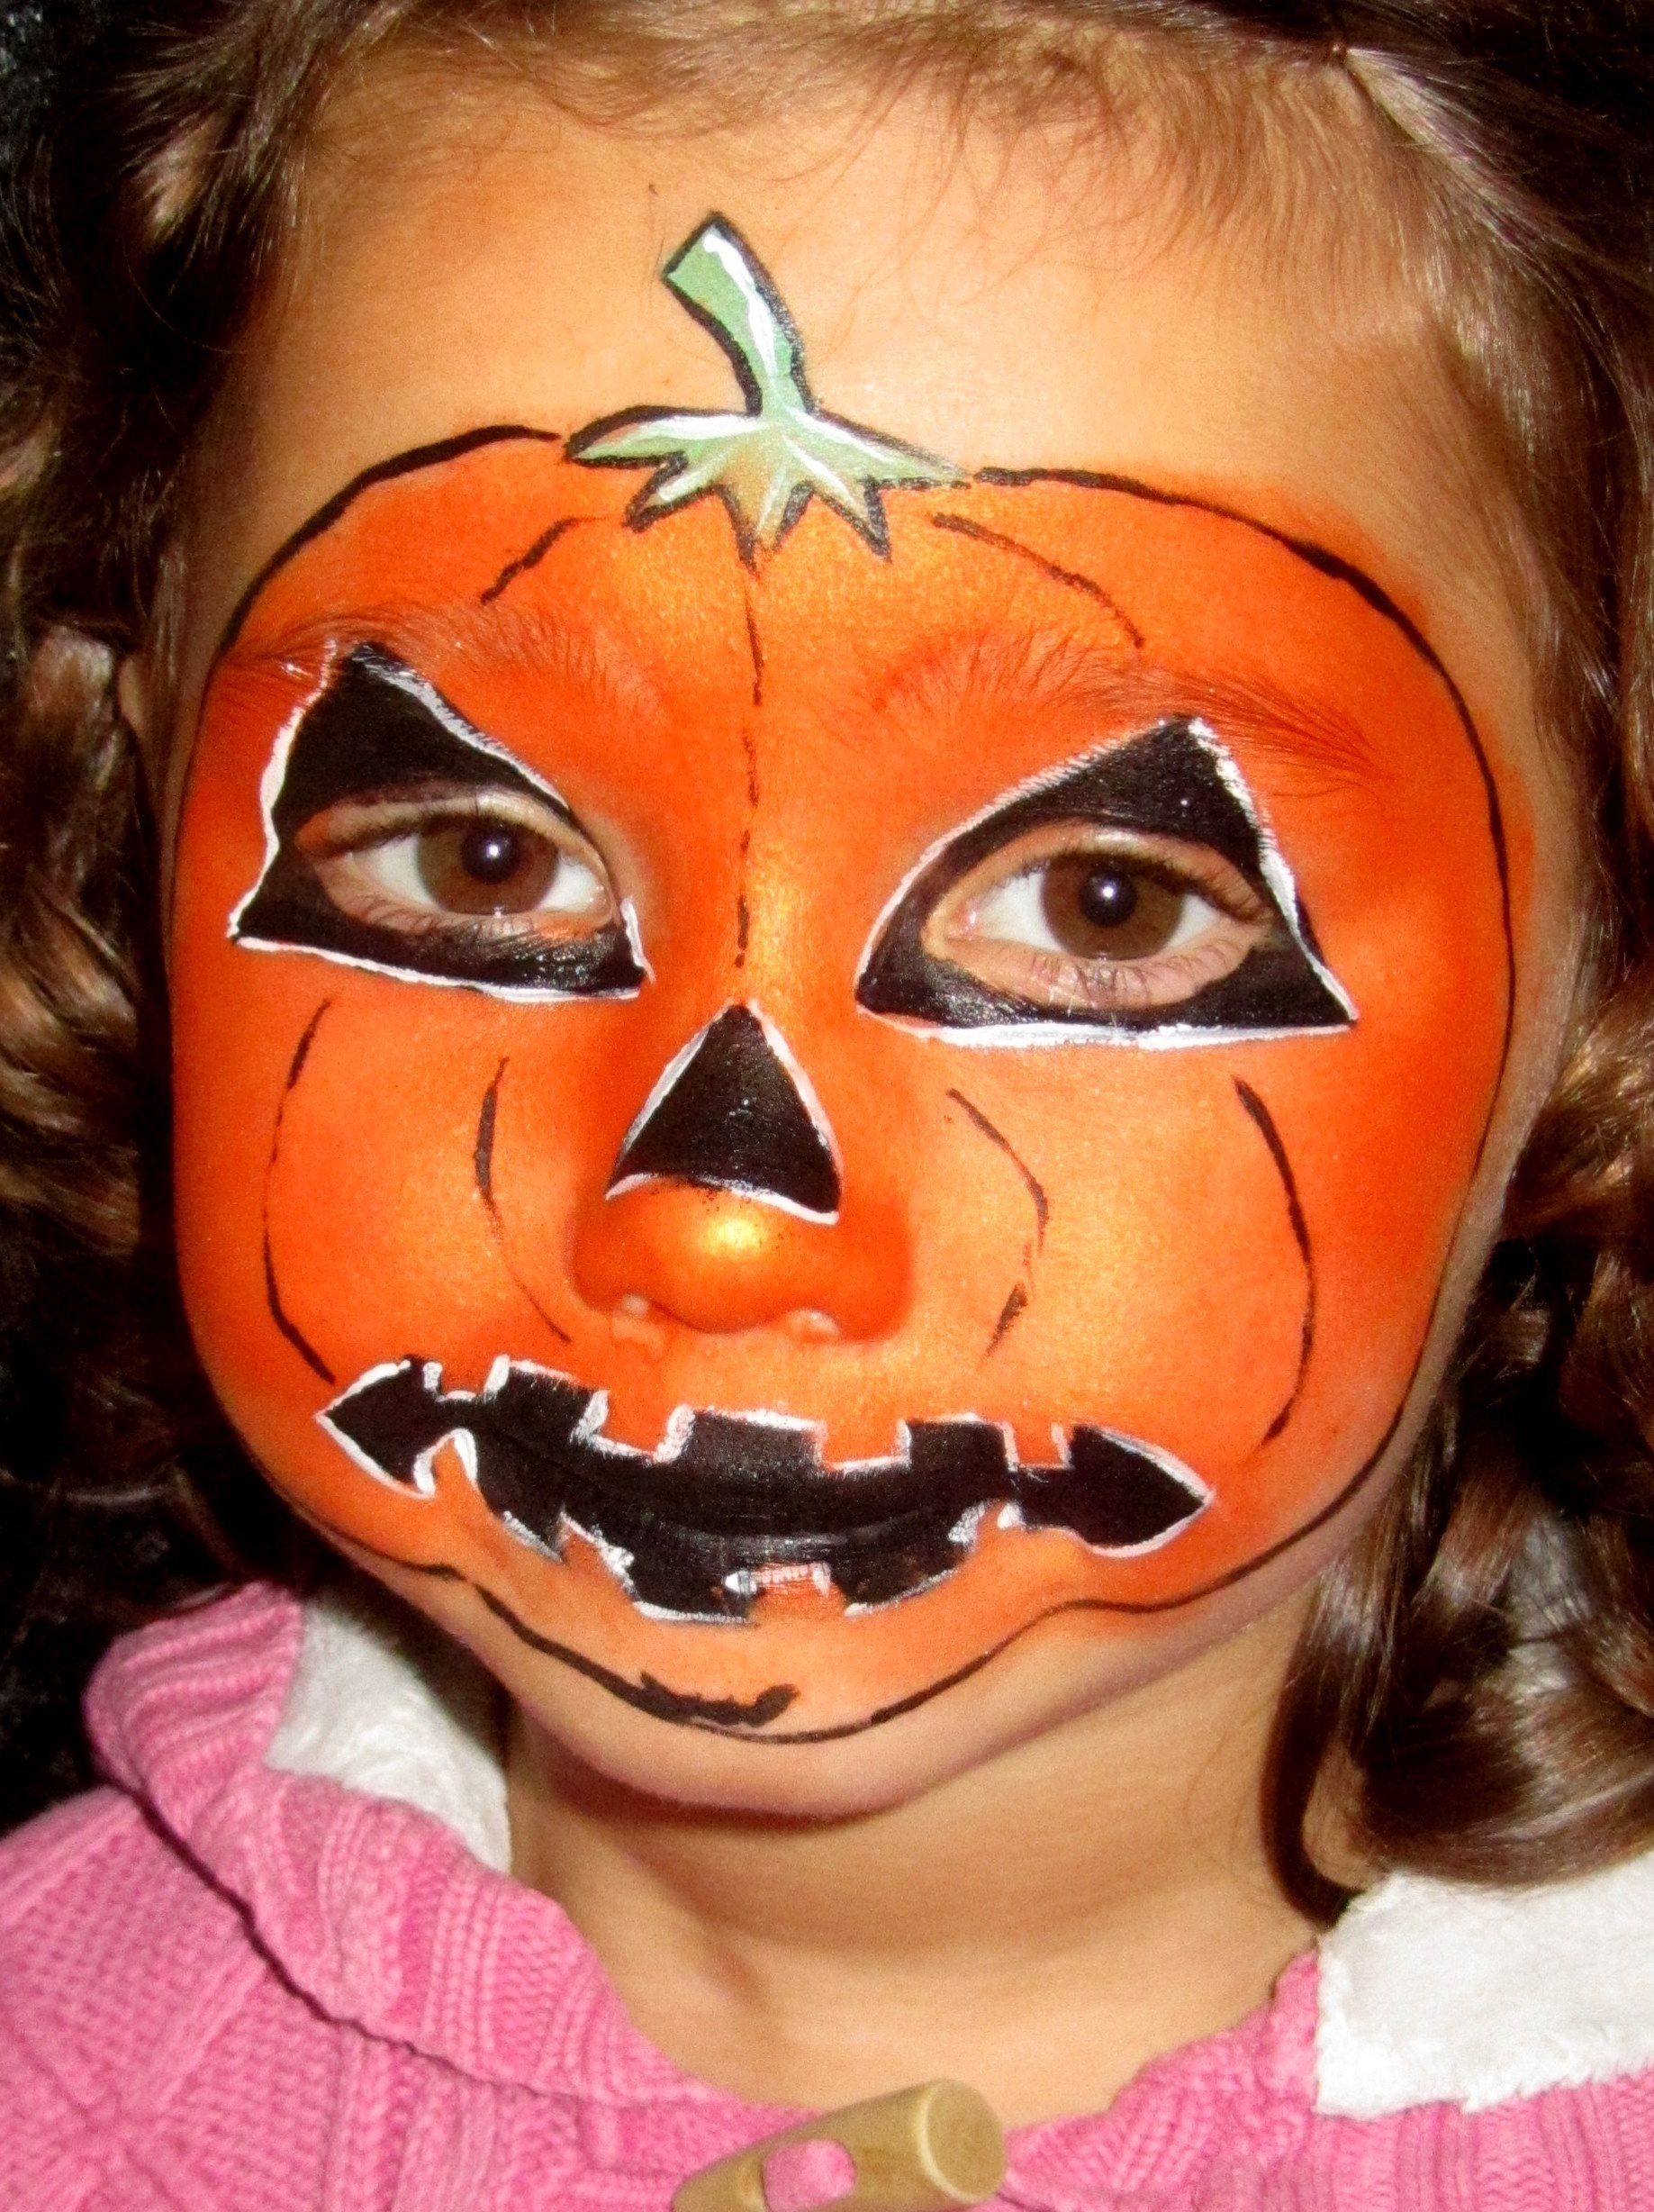 10 Attractive Halloween Face Painting Ideas For Kids halloween face paint design ideas celebration halloween face 1 2020